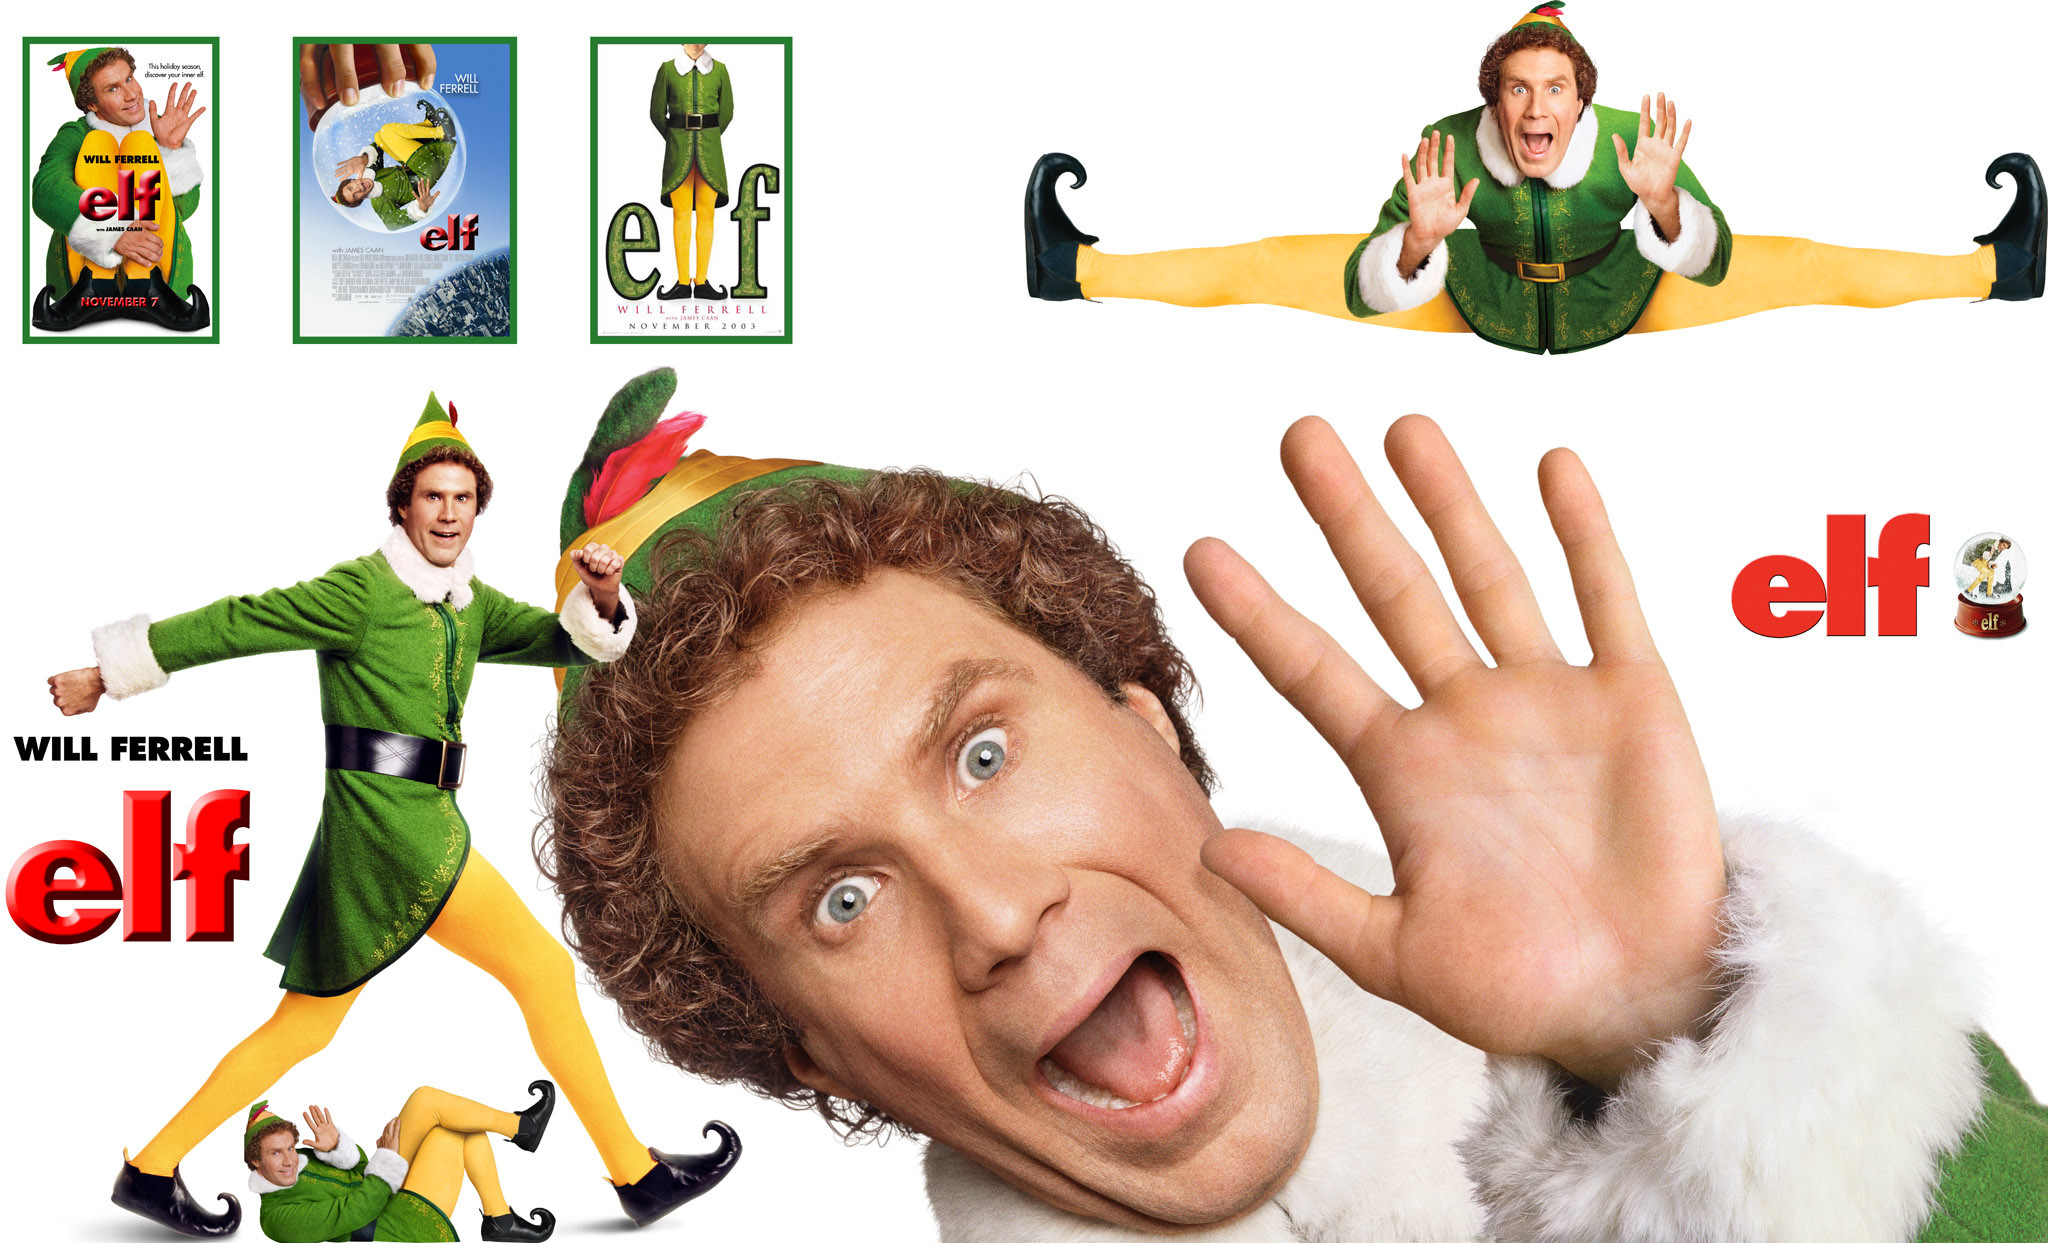 Image search: Elf Will Ferrell Quotes